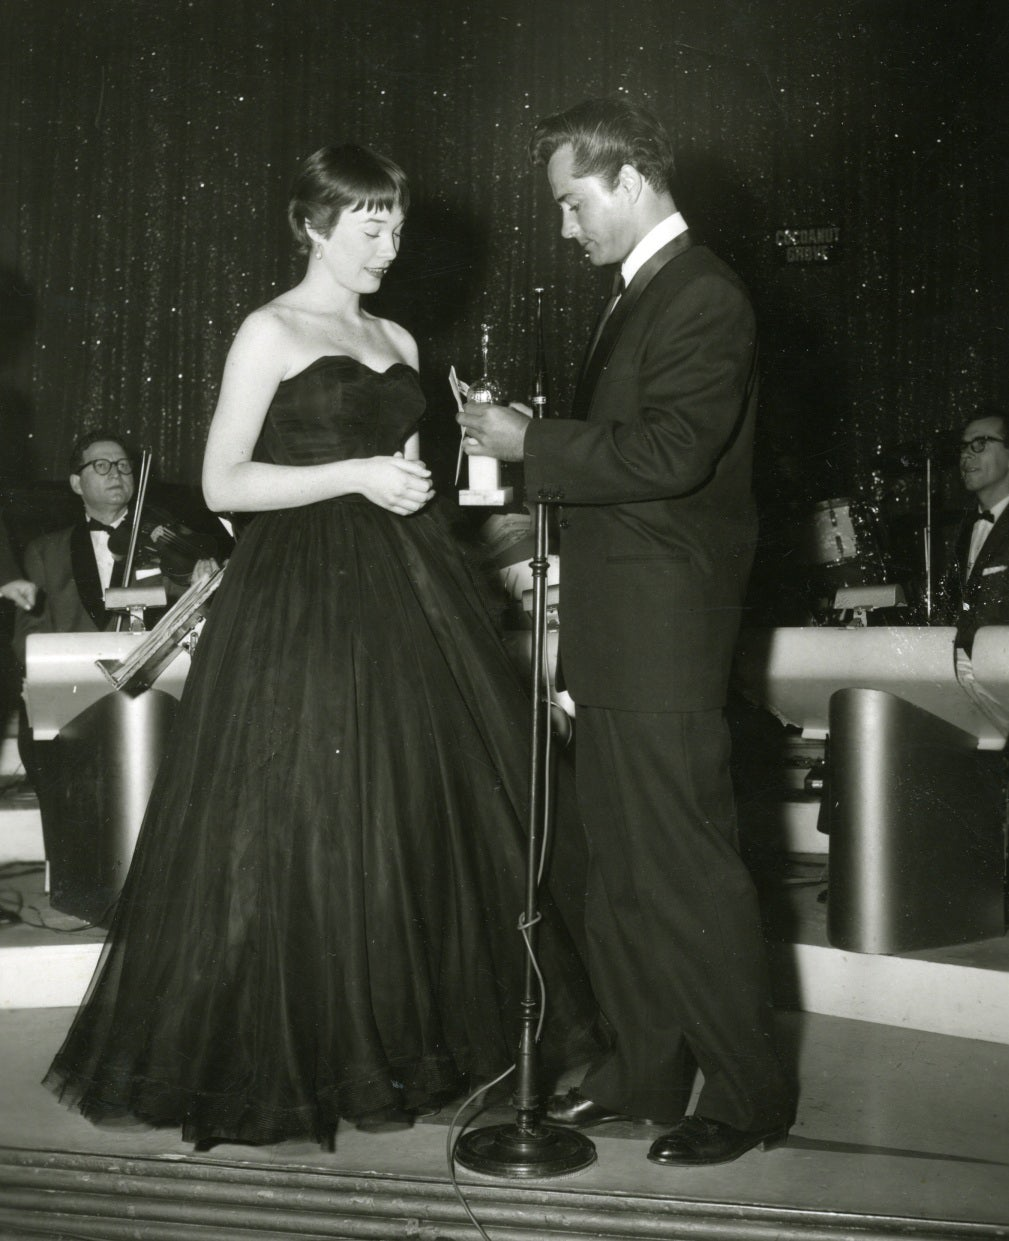 Shirley MacLaine receives a special award at the 1959 Golden Globes